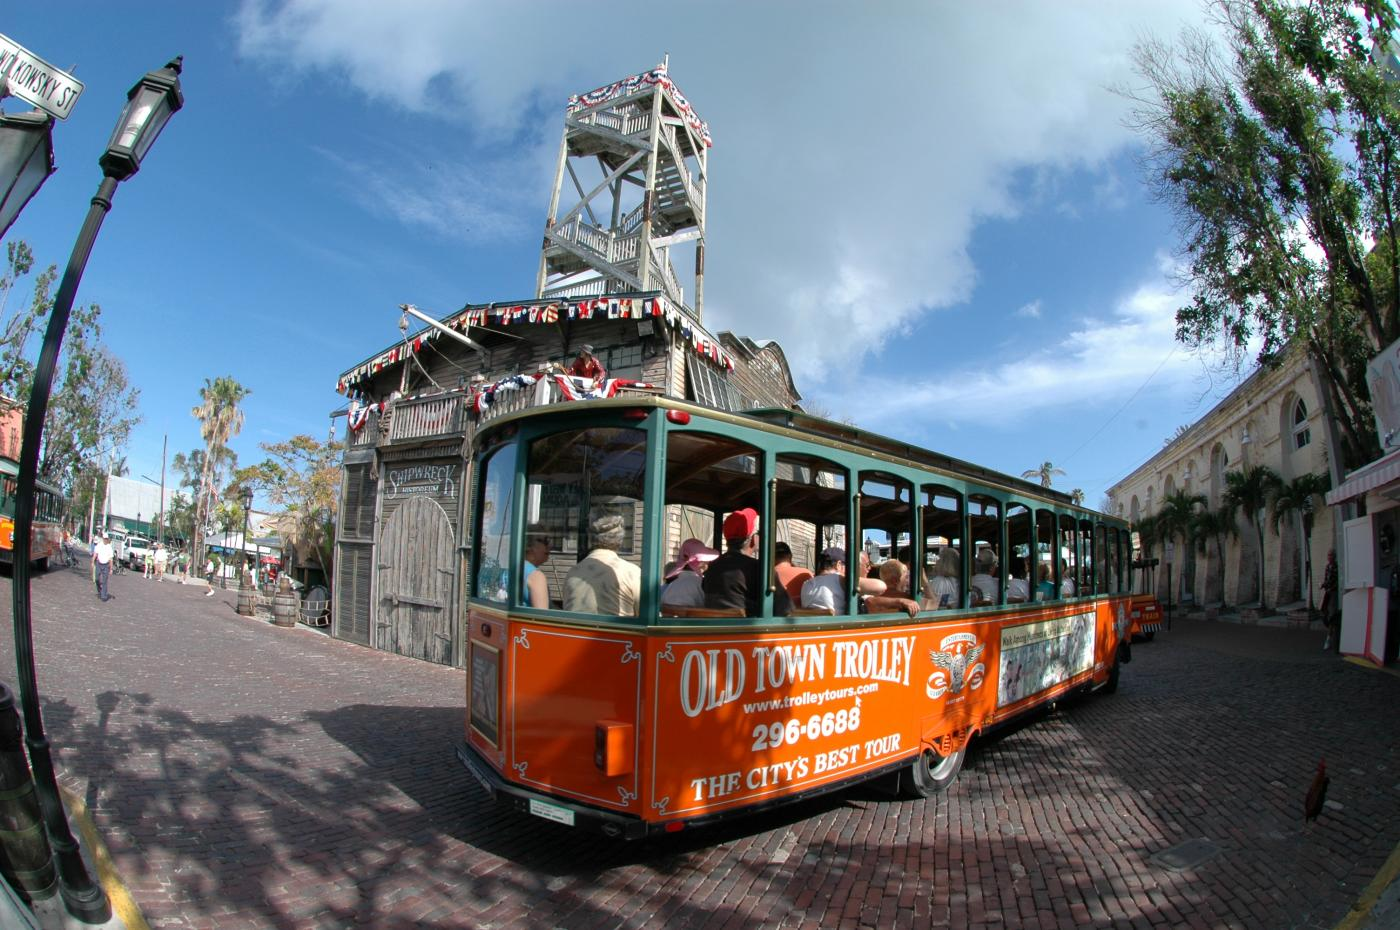 Old Town Trolley Tour - Hop On, Hop Off in Key West, FL